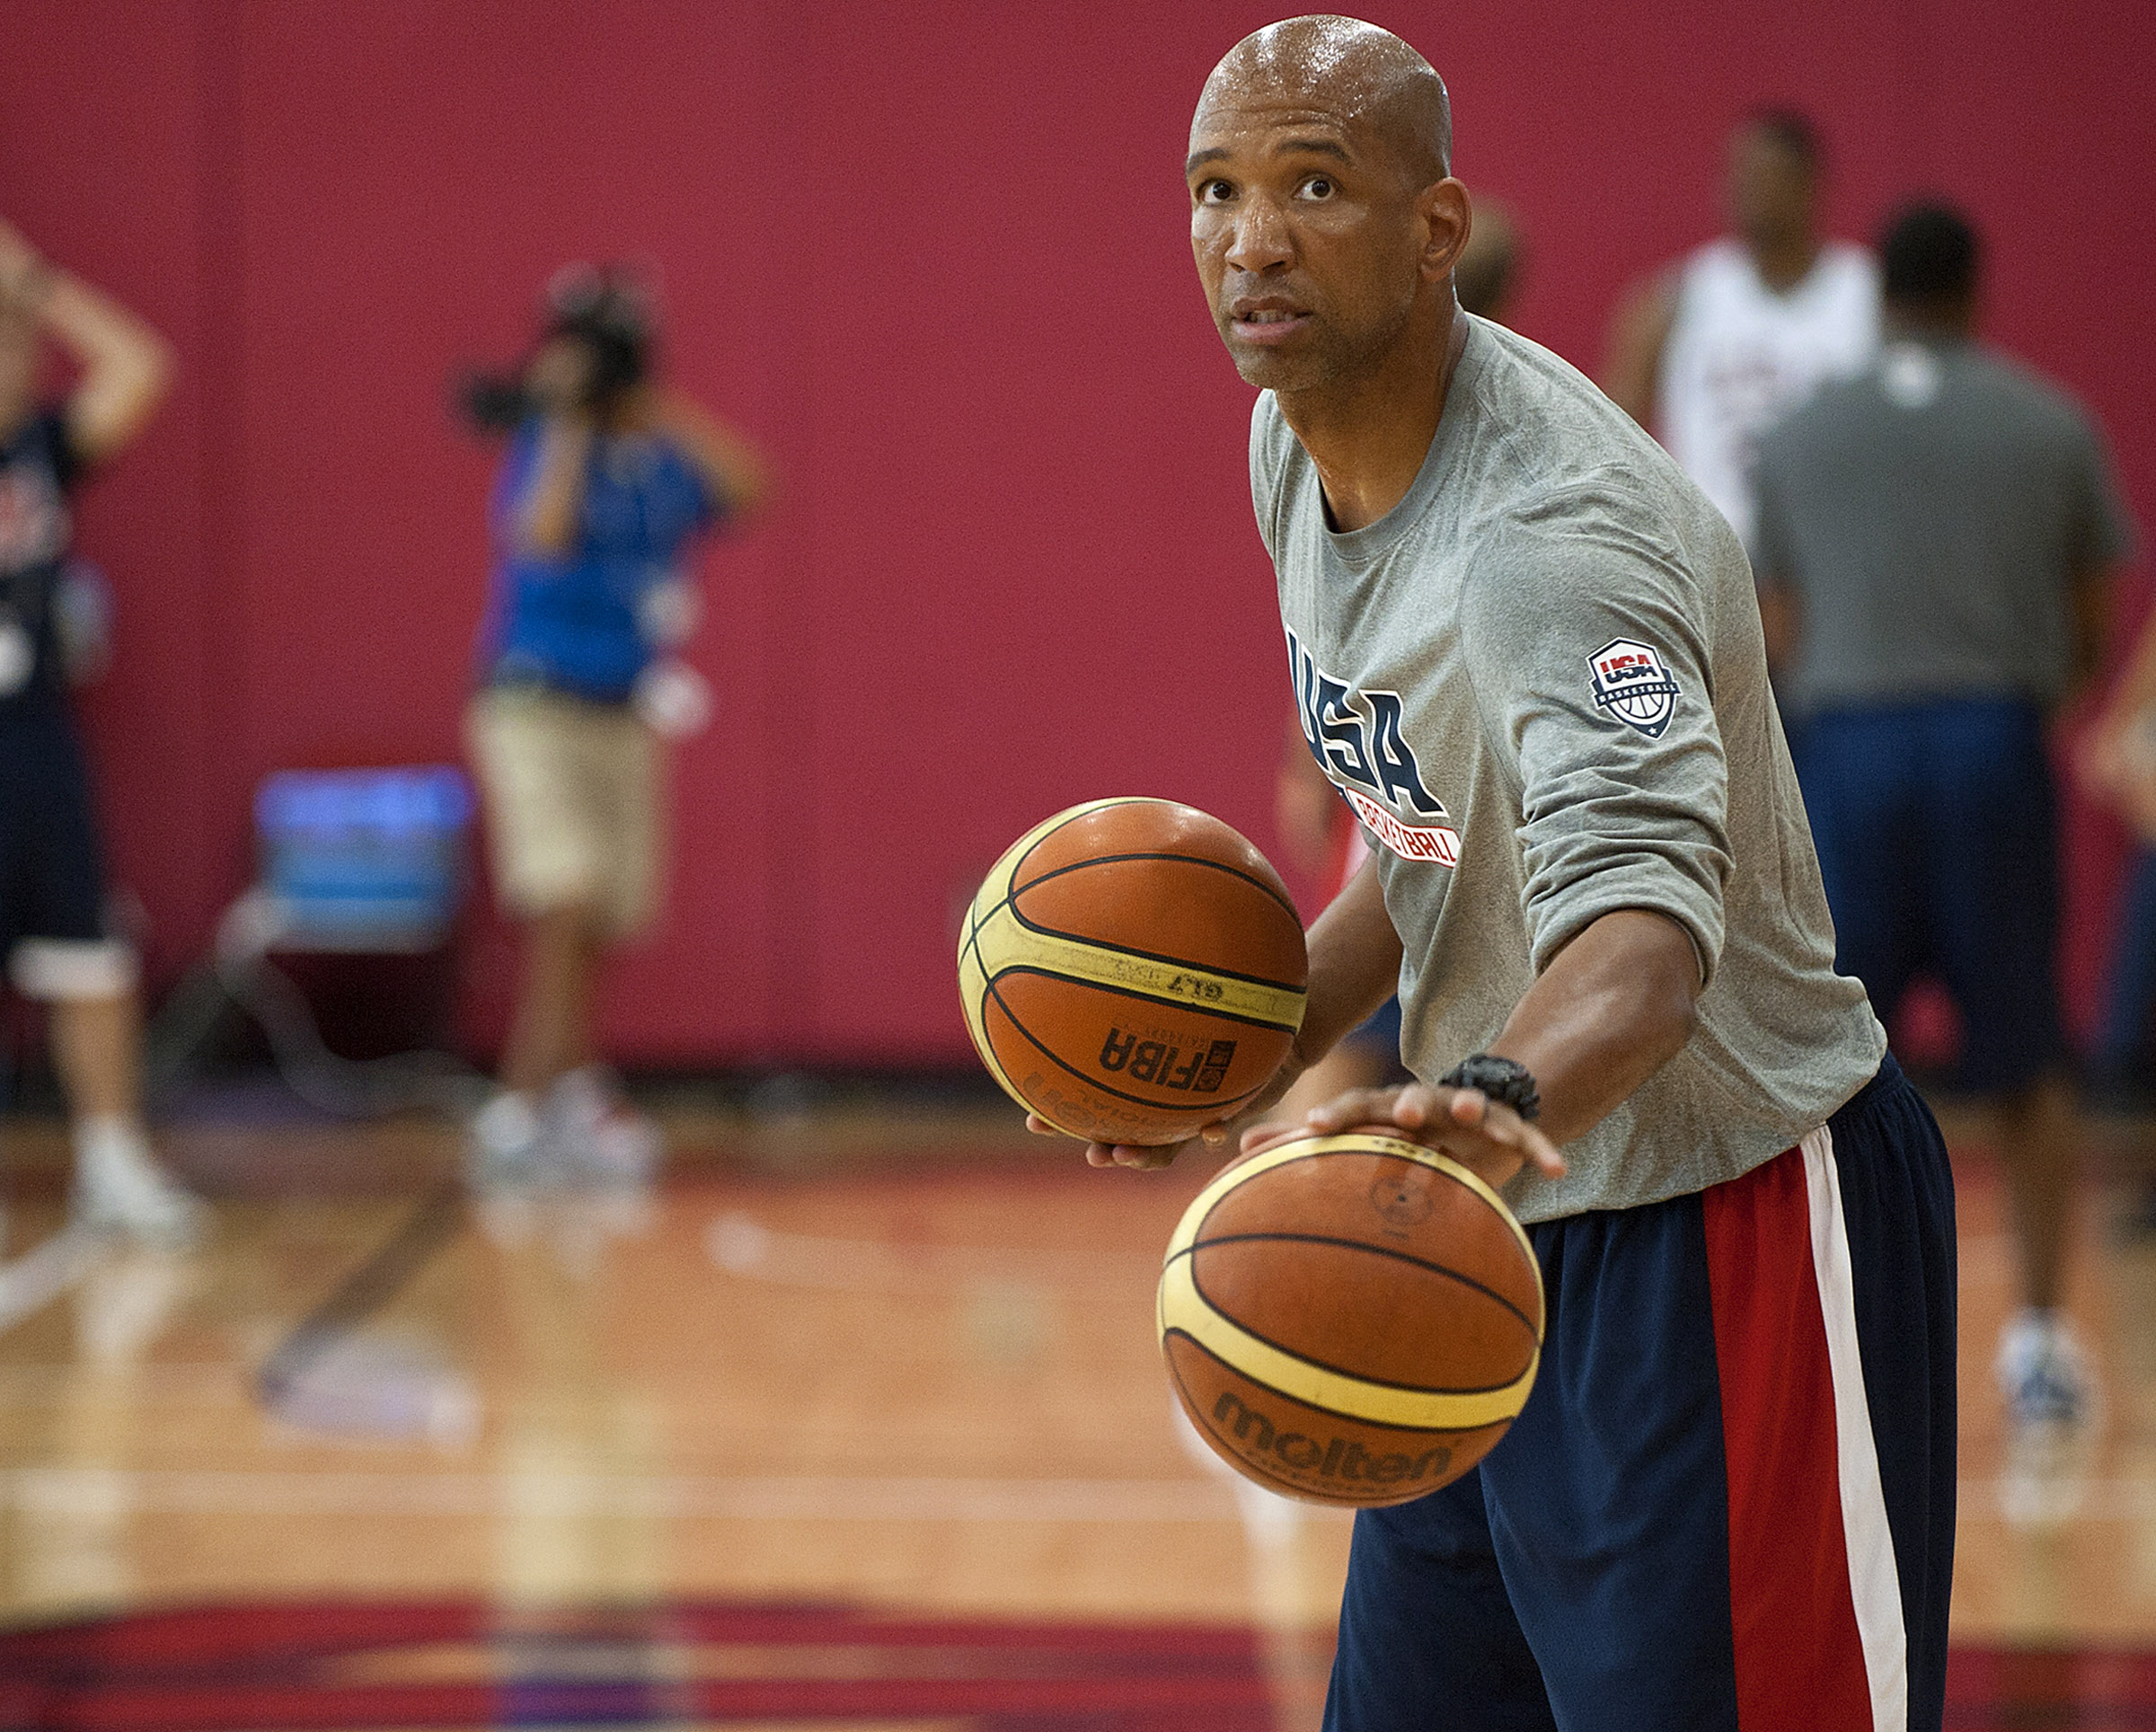 Monty Williams is the strongest man in the NBA